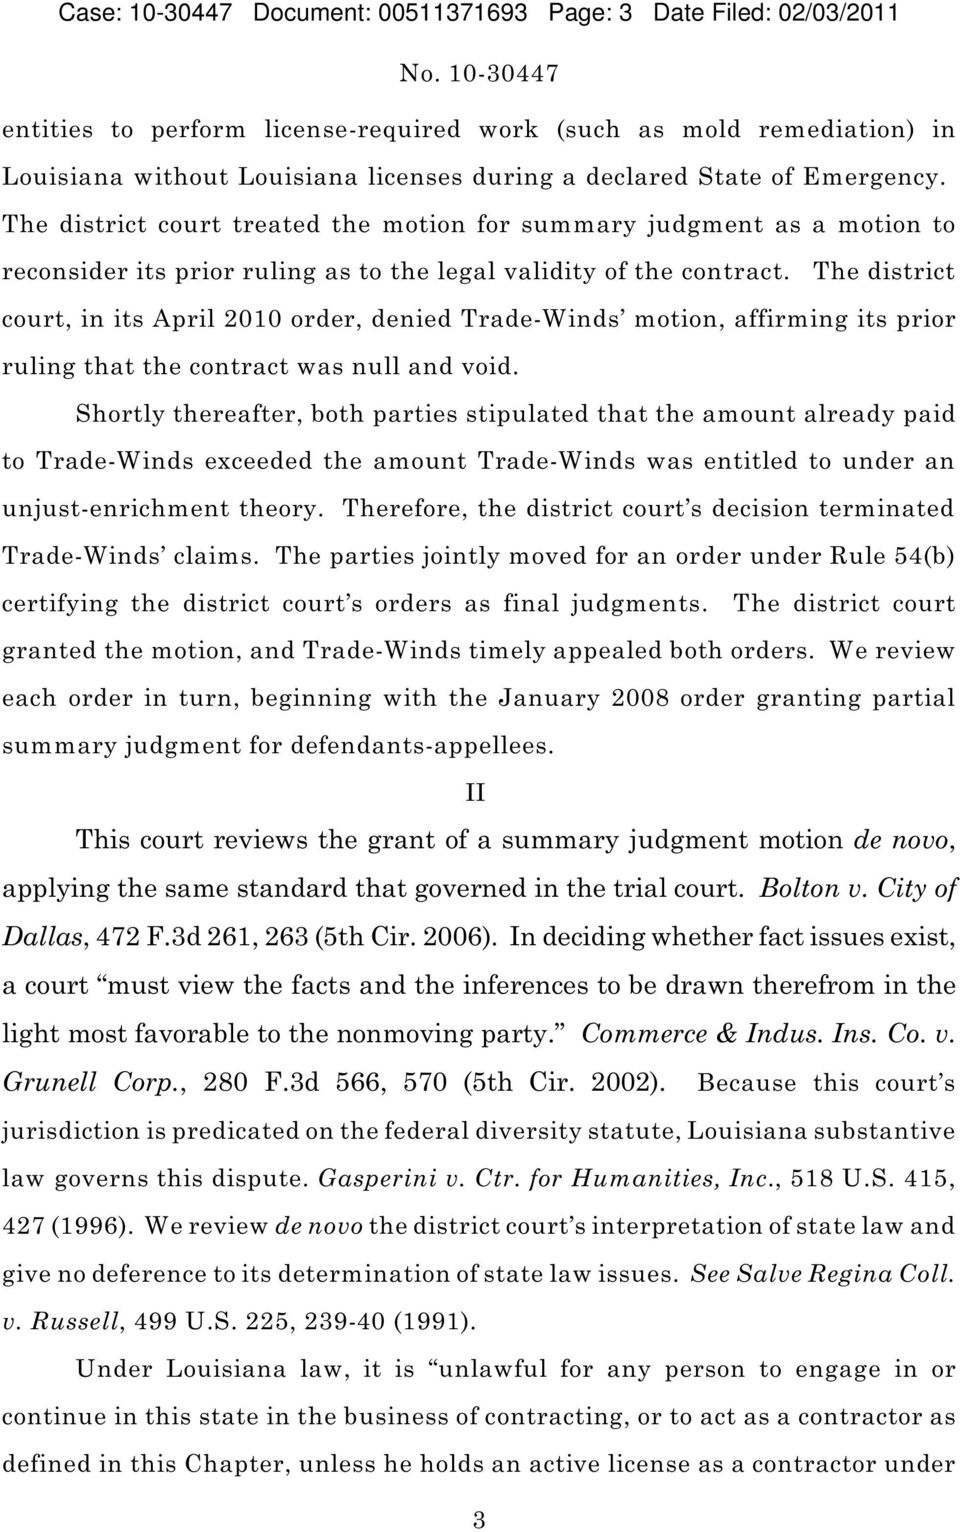 The district court, in its April 2010 order, denied Trade-Winds motion, affirming its prior ruling that the contract was null and void.